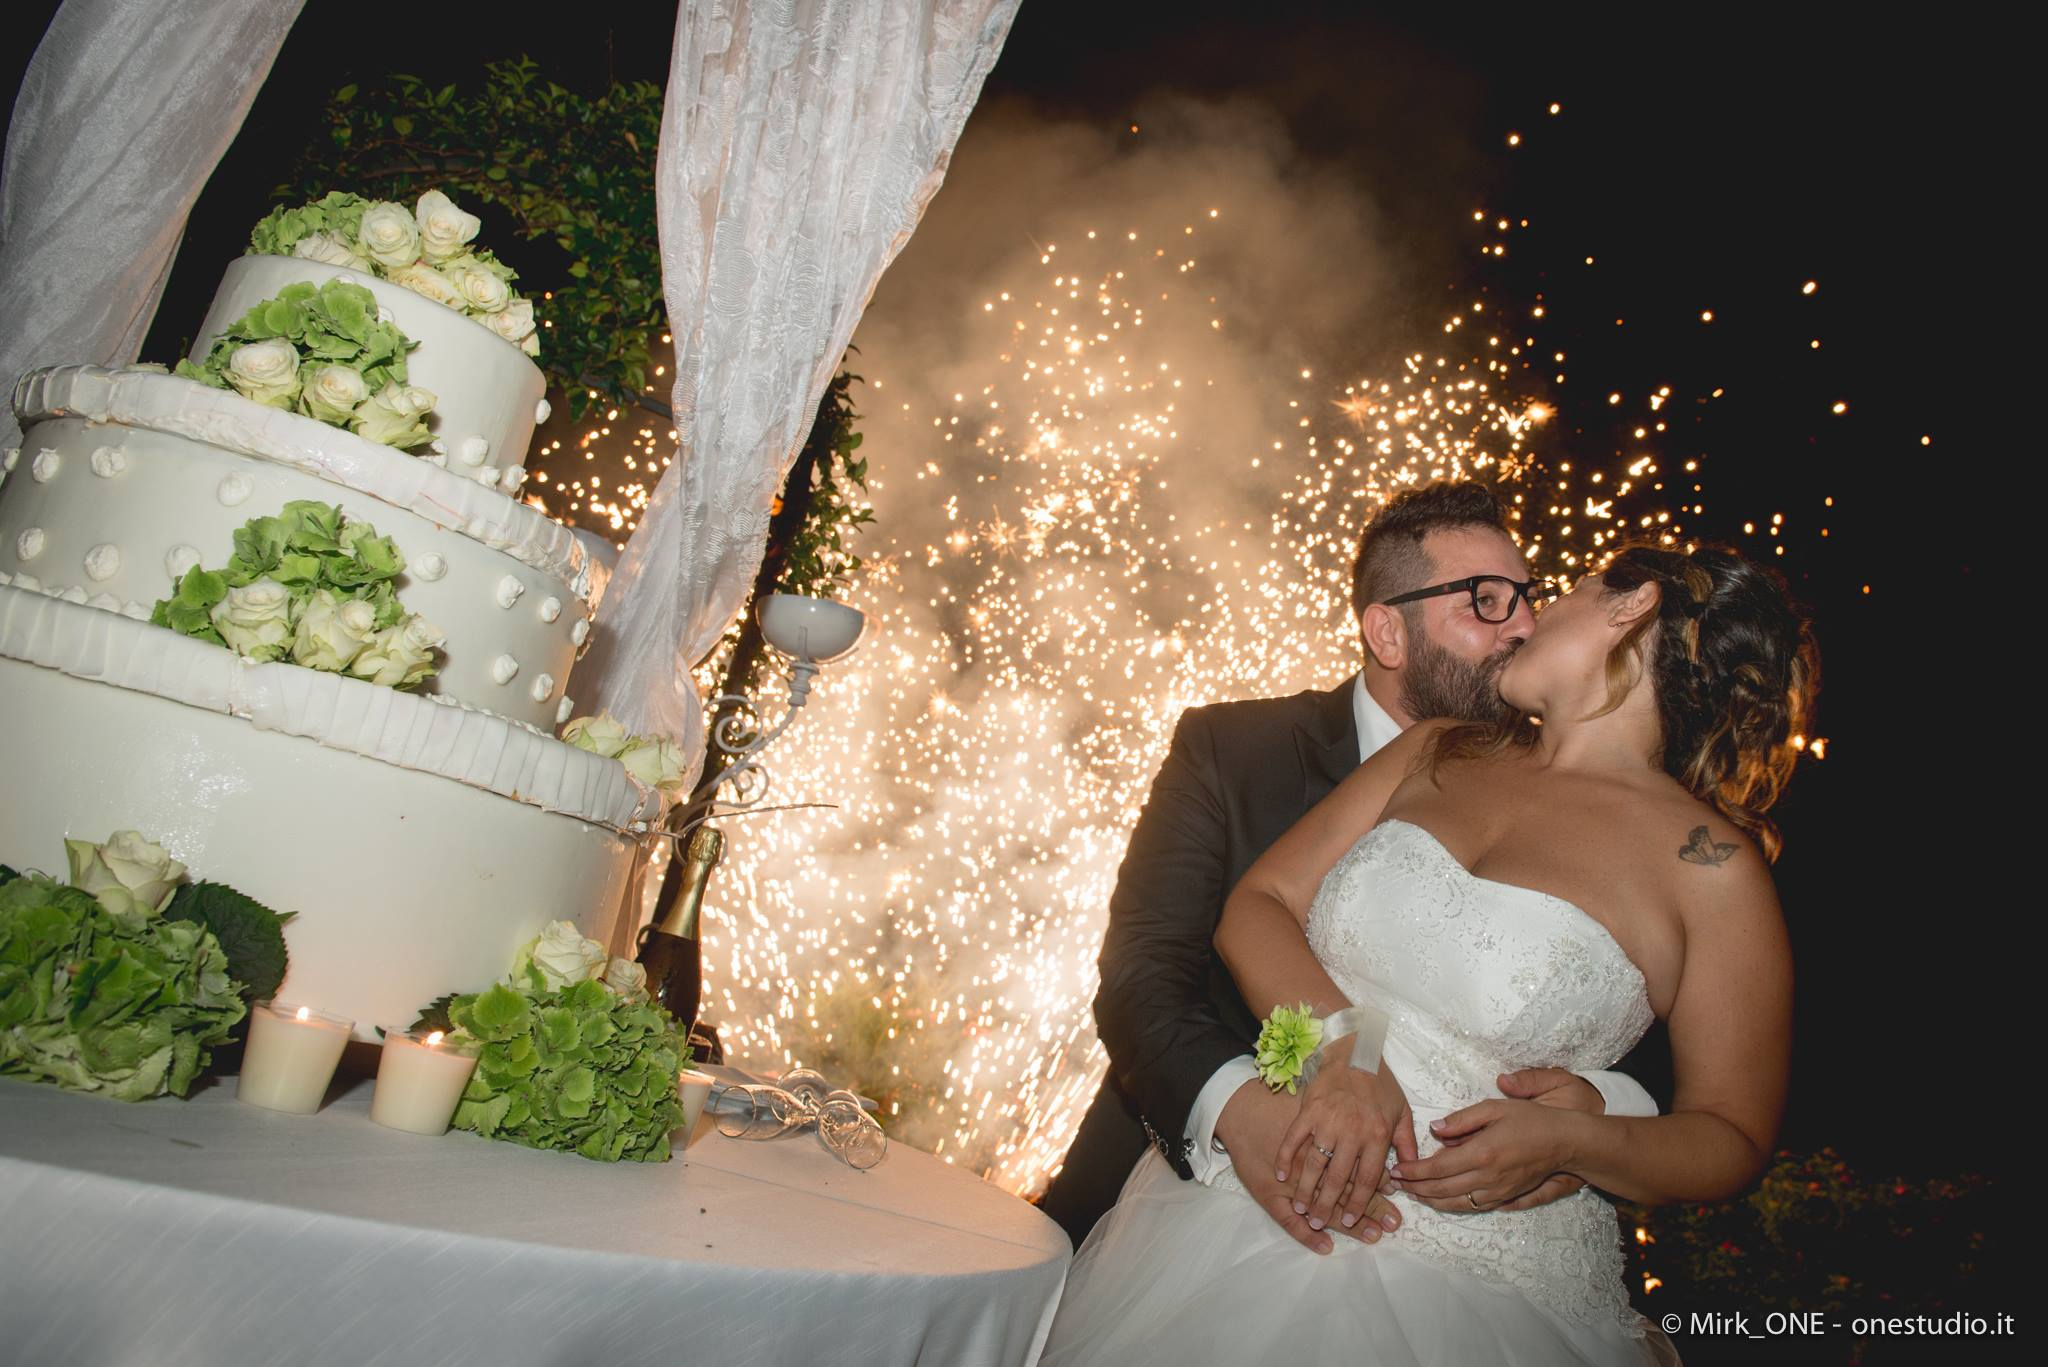 https://lnx.mirkone.it/wp-content/uploads/2018/03/mirk_ONE-fotografo-matrimonio-00886.jpg